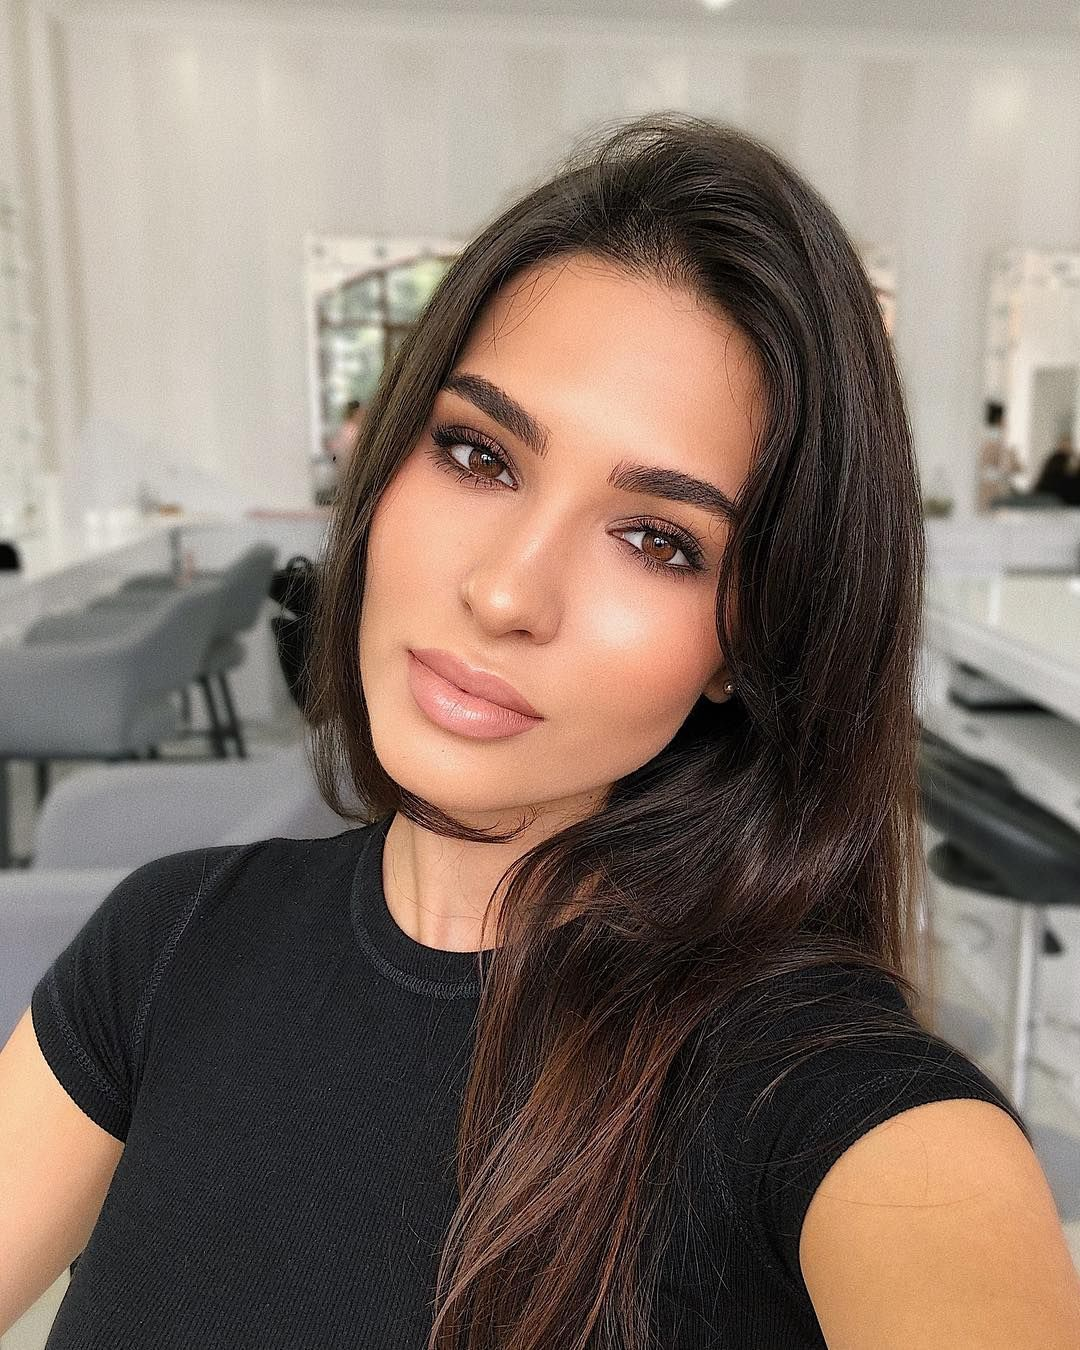 55 Easy Makeup Ideas For Work Style Natural Prom Makeup Makeup Looks Daytime Makeup